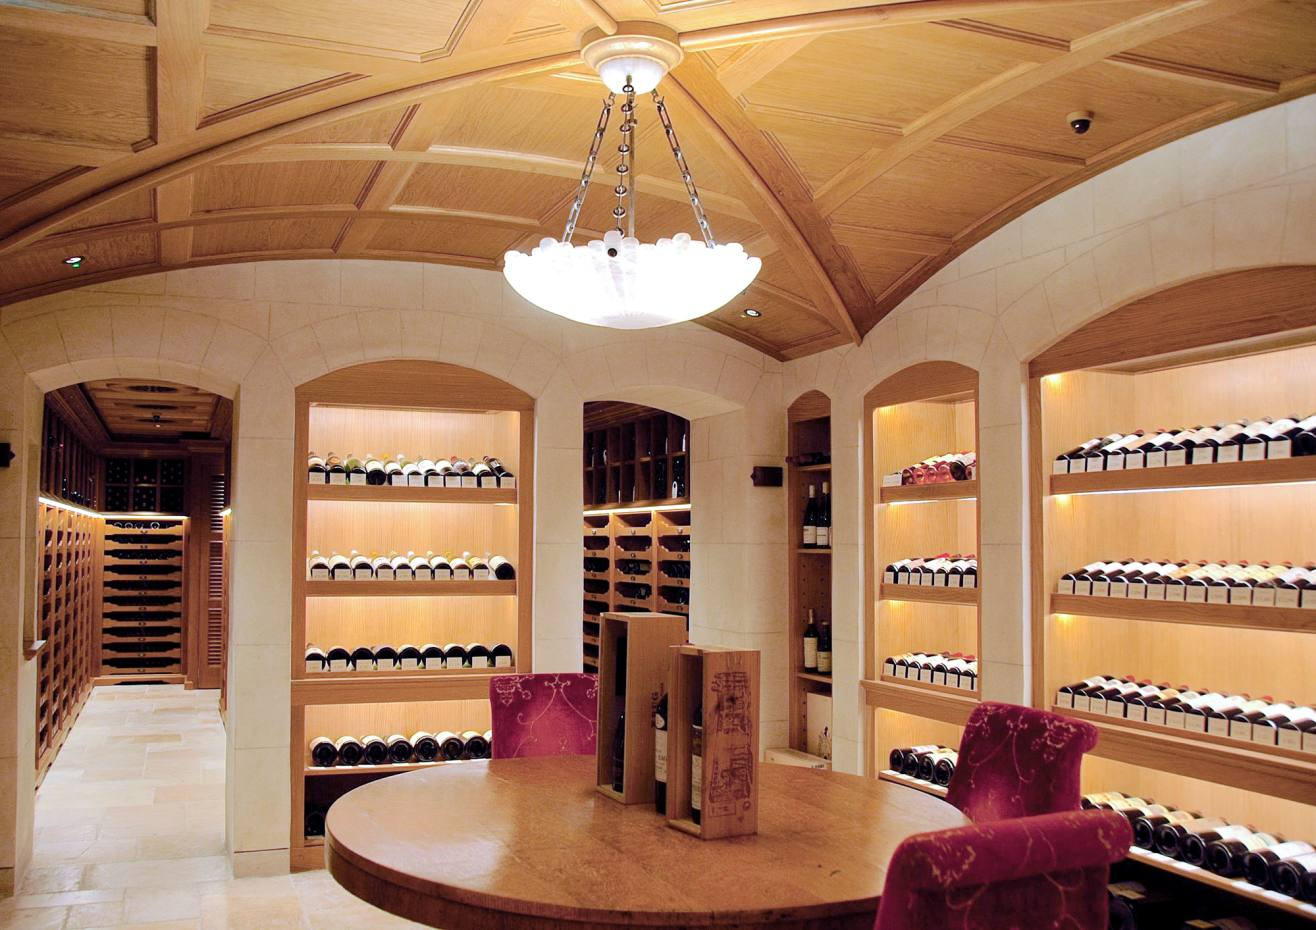 Members can keep up to 12 bottles in Oswald's cellar